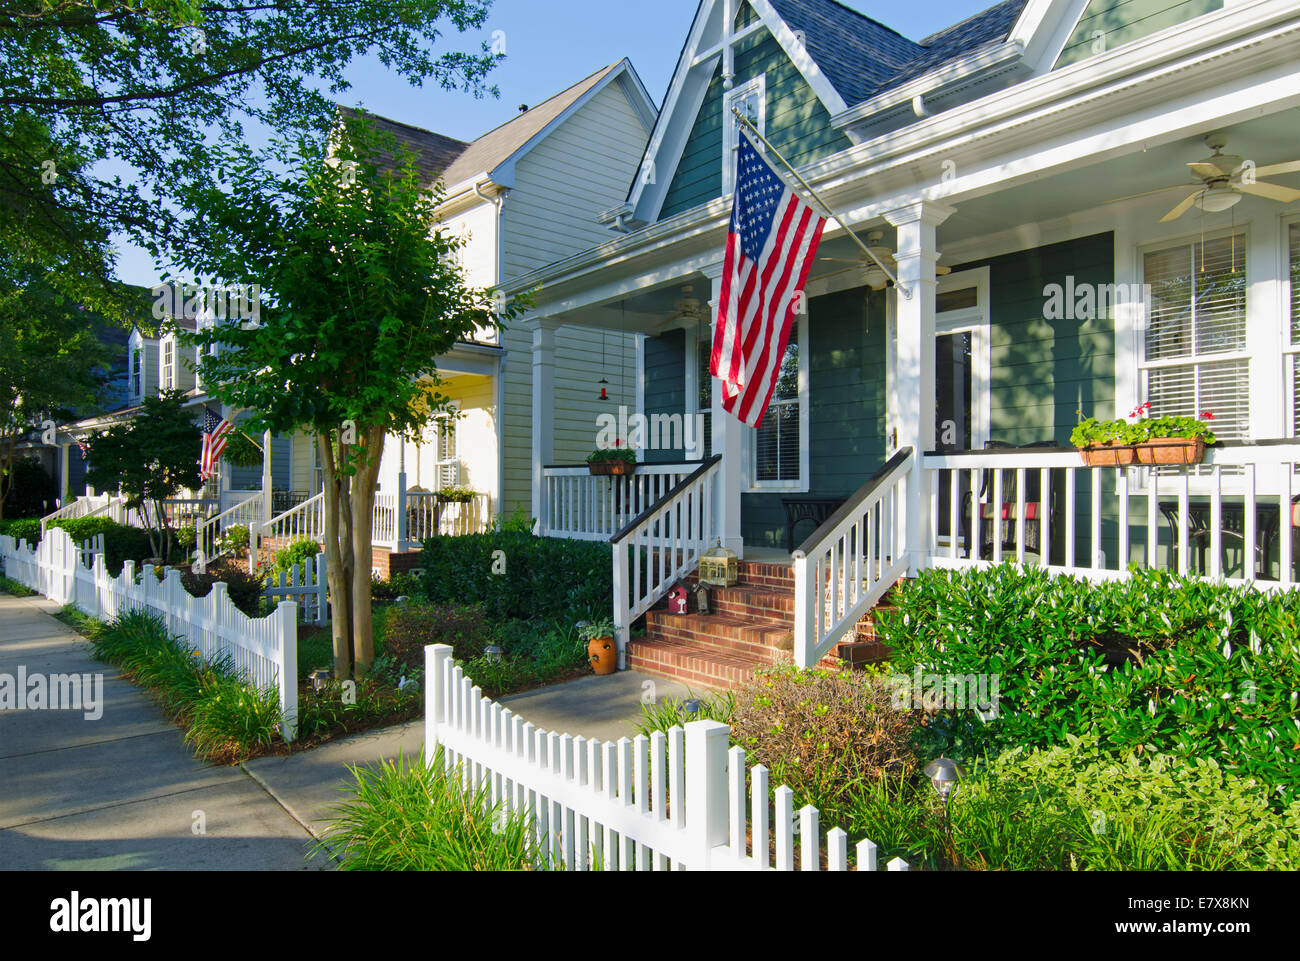 The American Dream Of A Home With A Flag And A White Picket Fence In